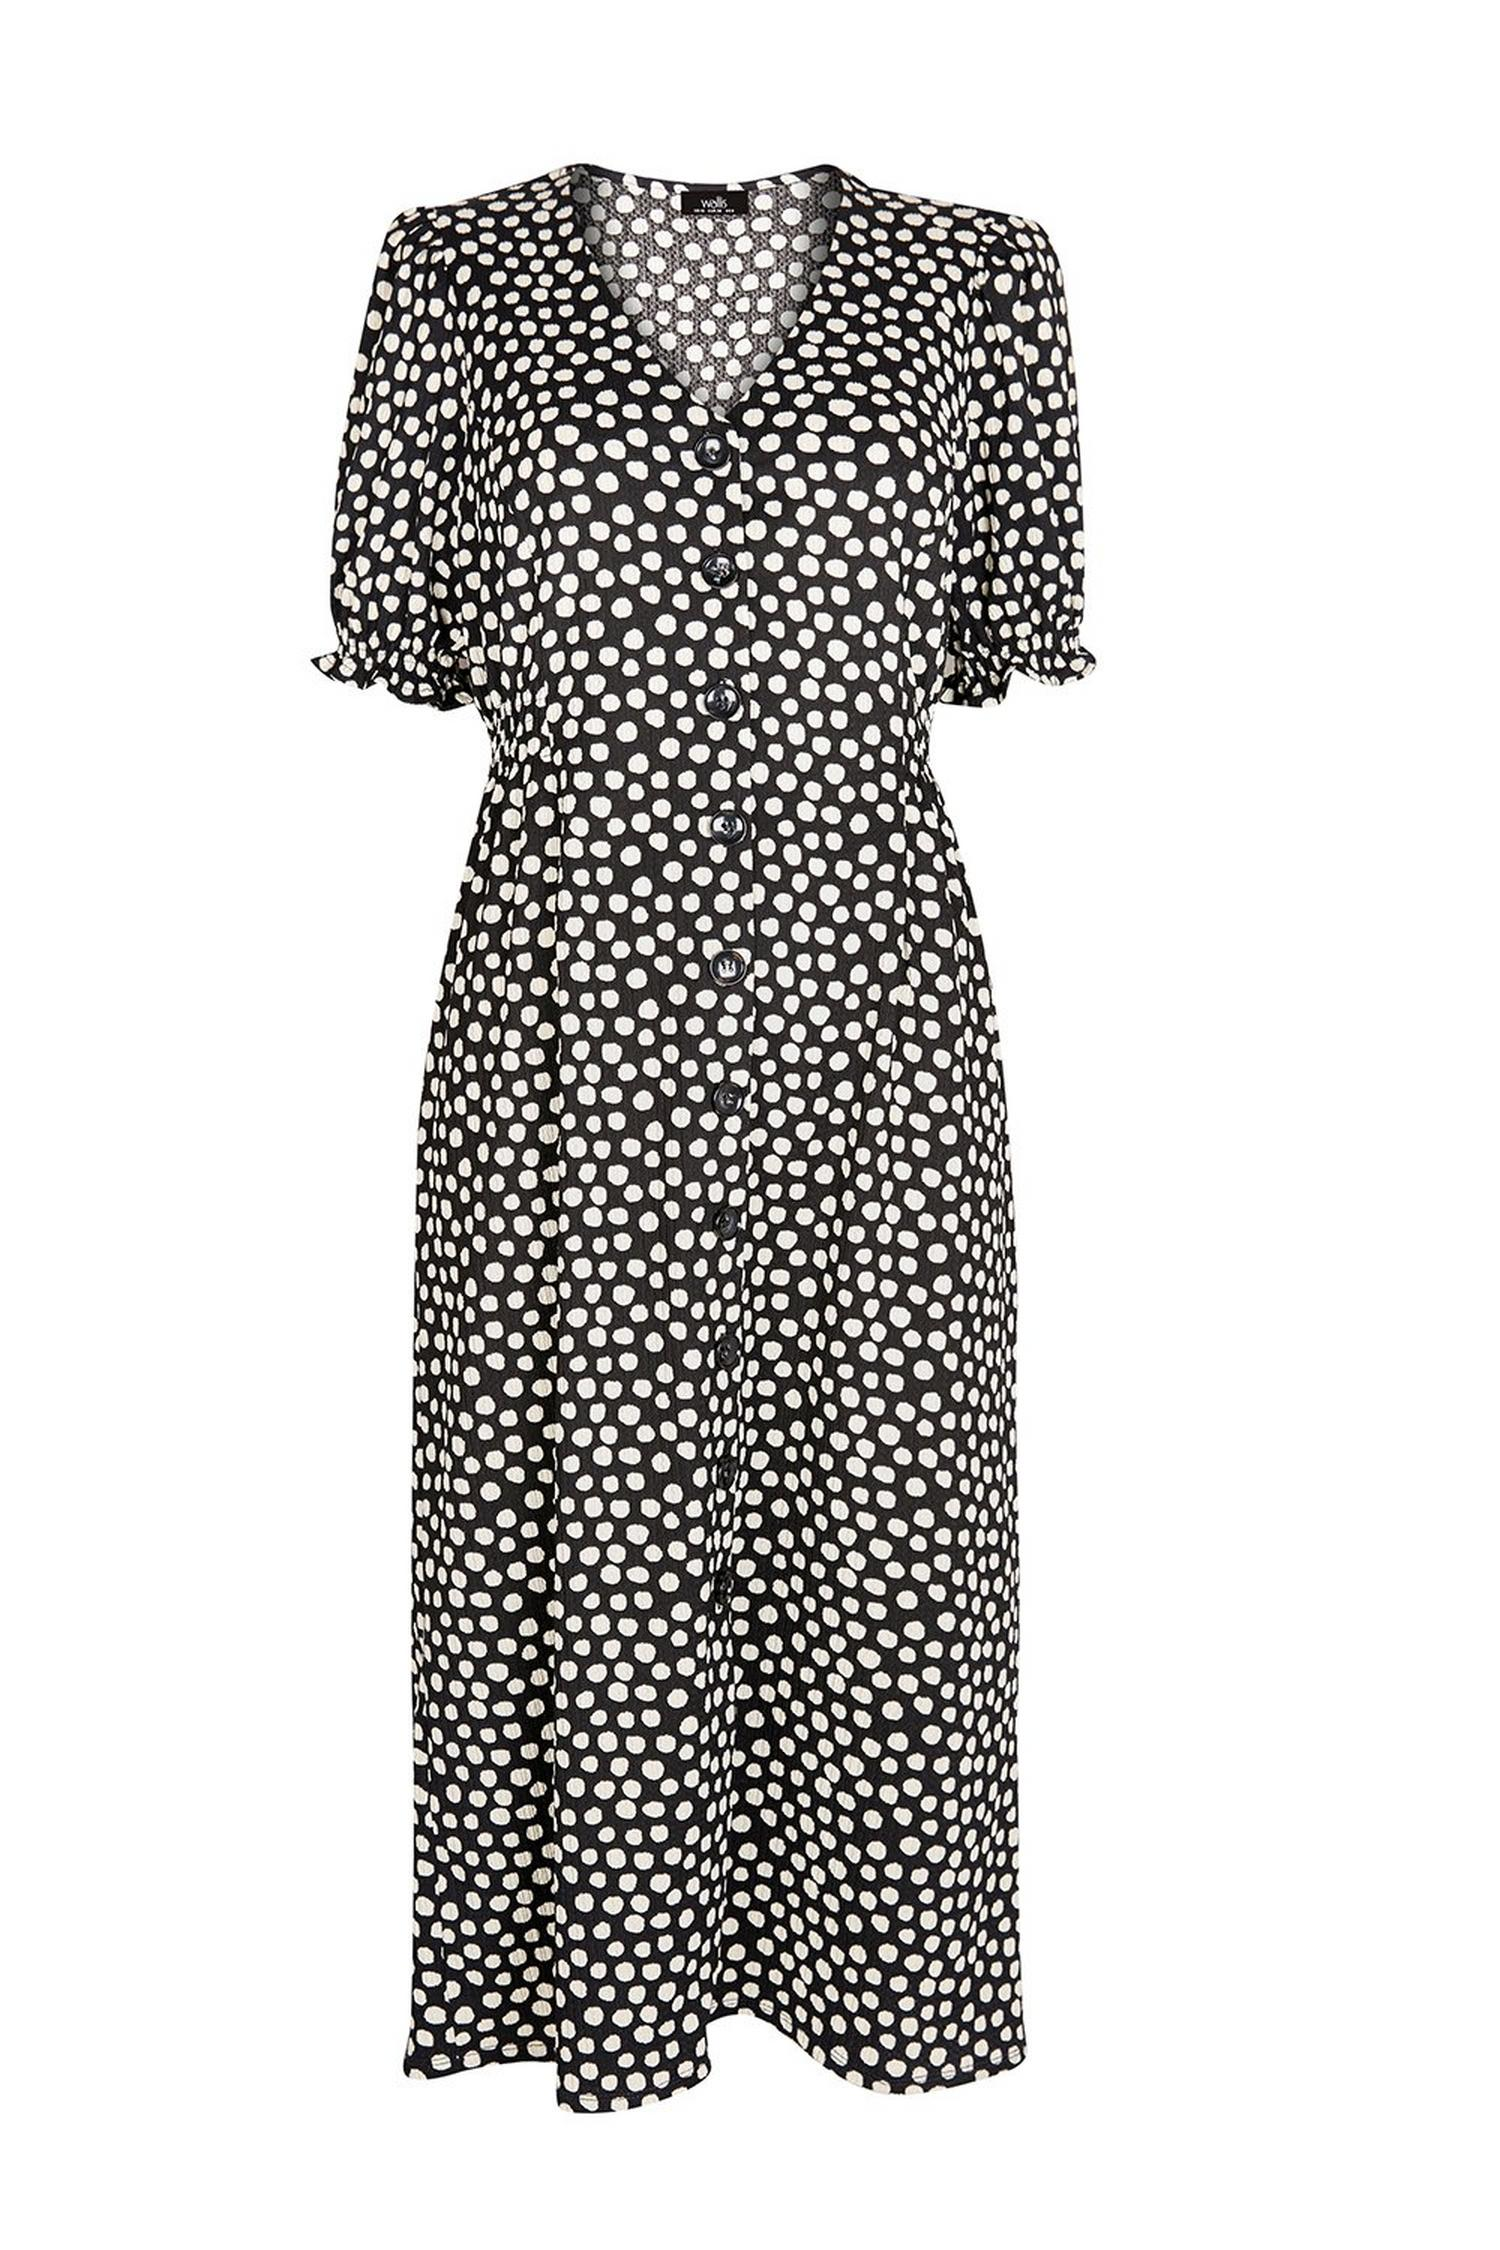 105 Black Polka Dot Midi Dress image number 2